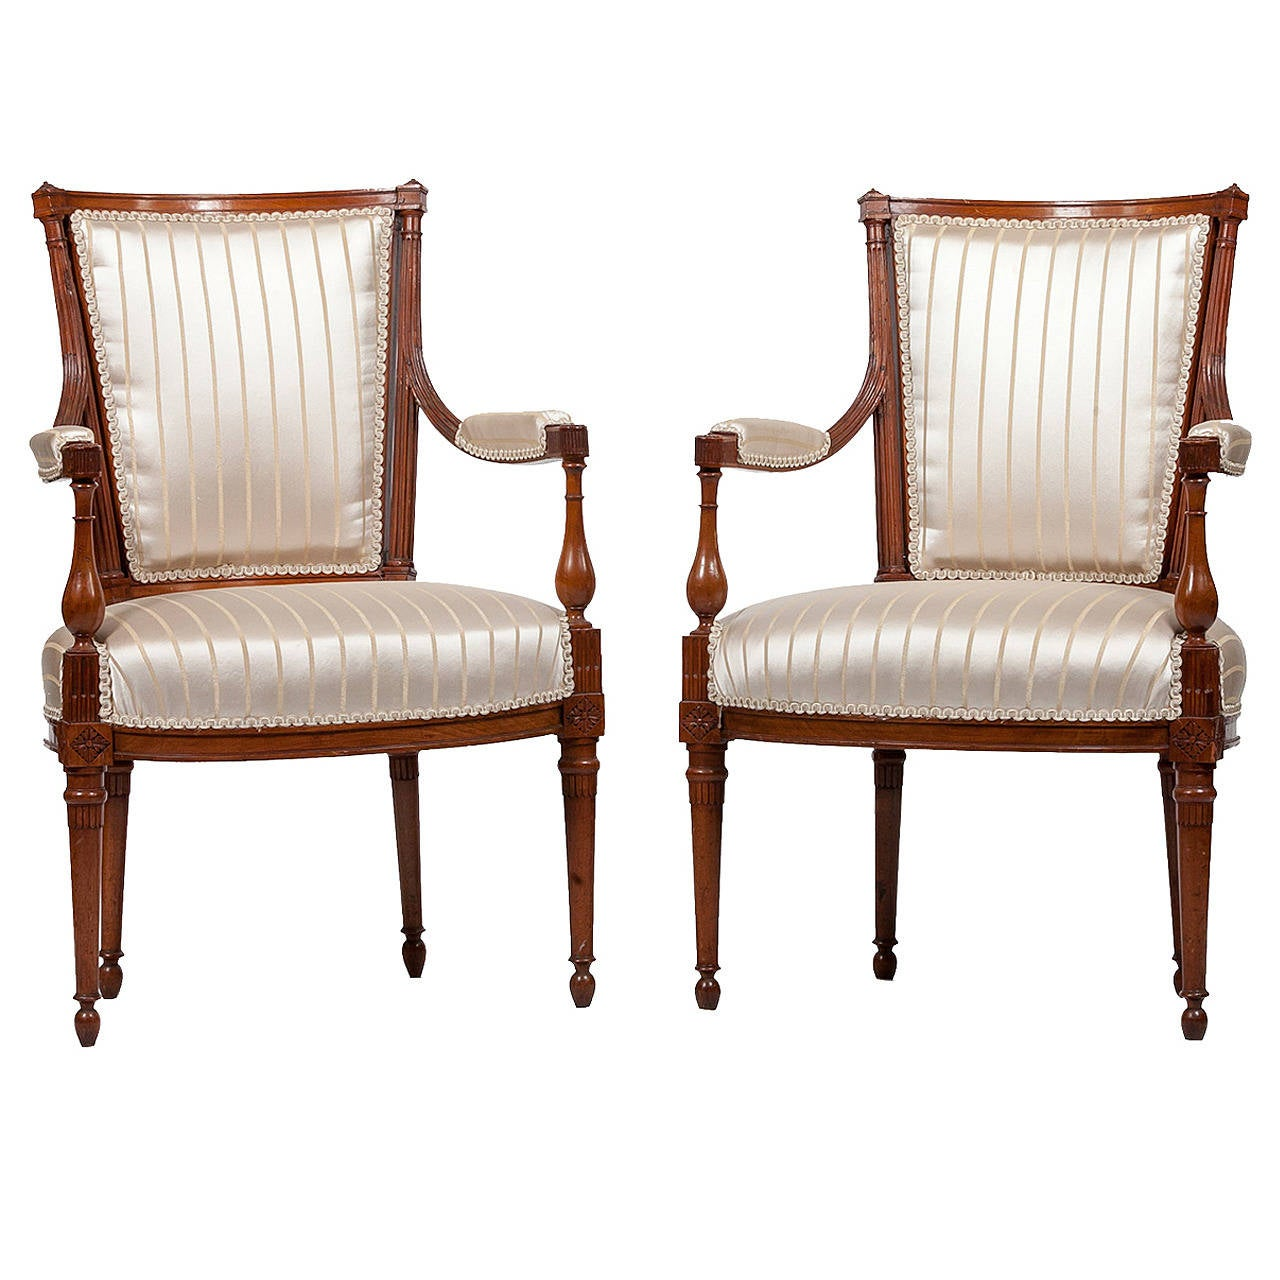 Early th century french empire chairs at stdibs